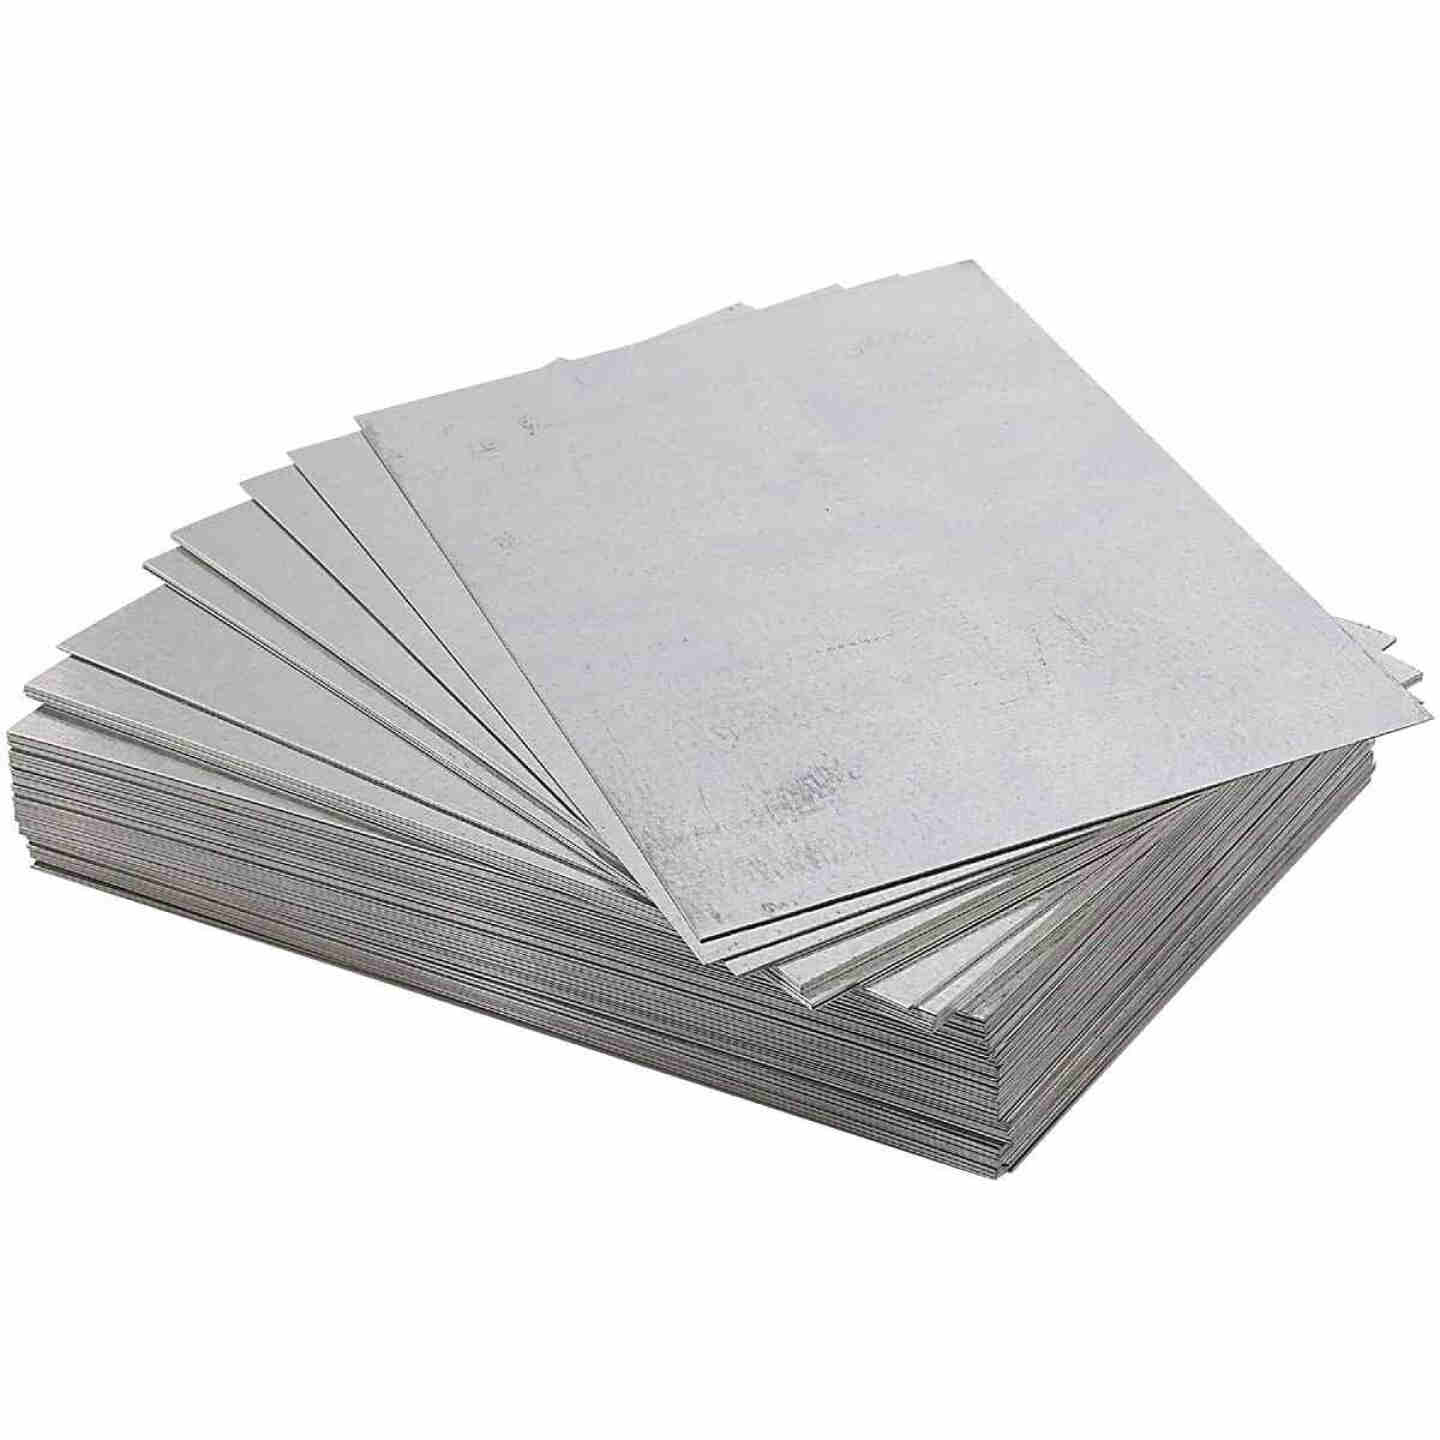 NorWesco 5 In. x 8 In. Mill Galvanized Step Flashing Shingle Image 1